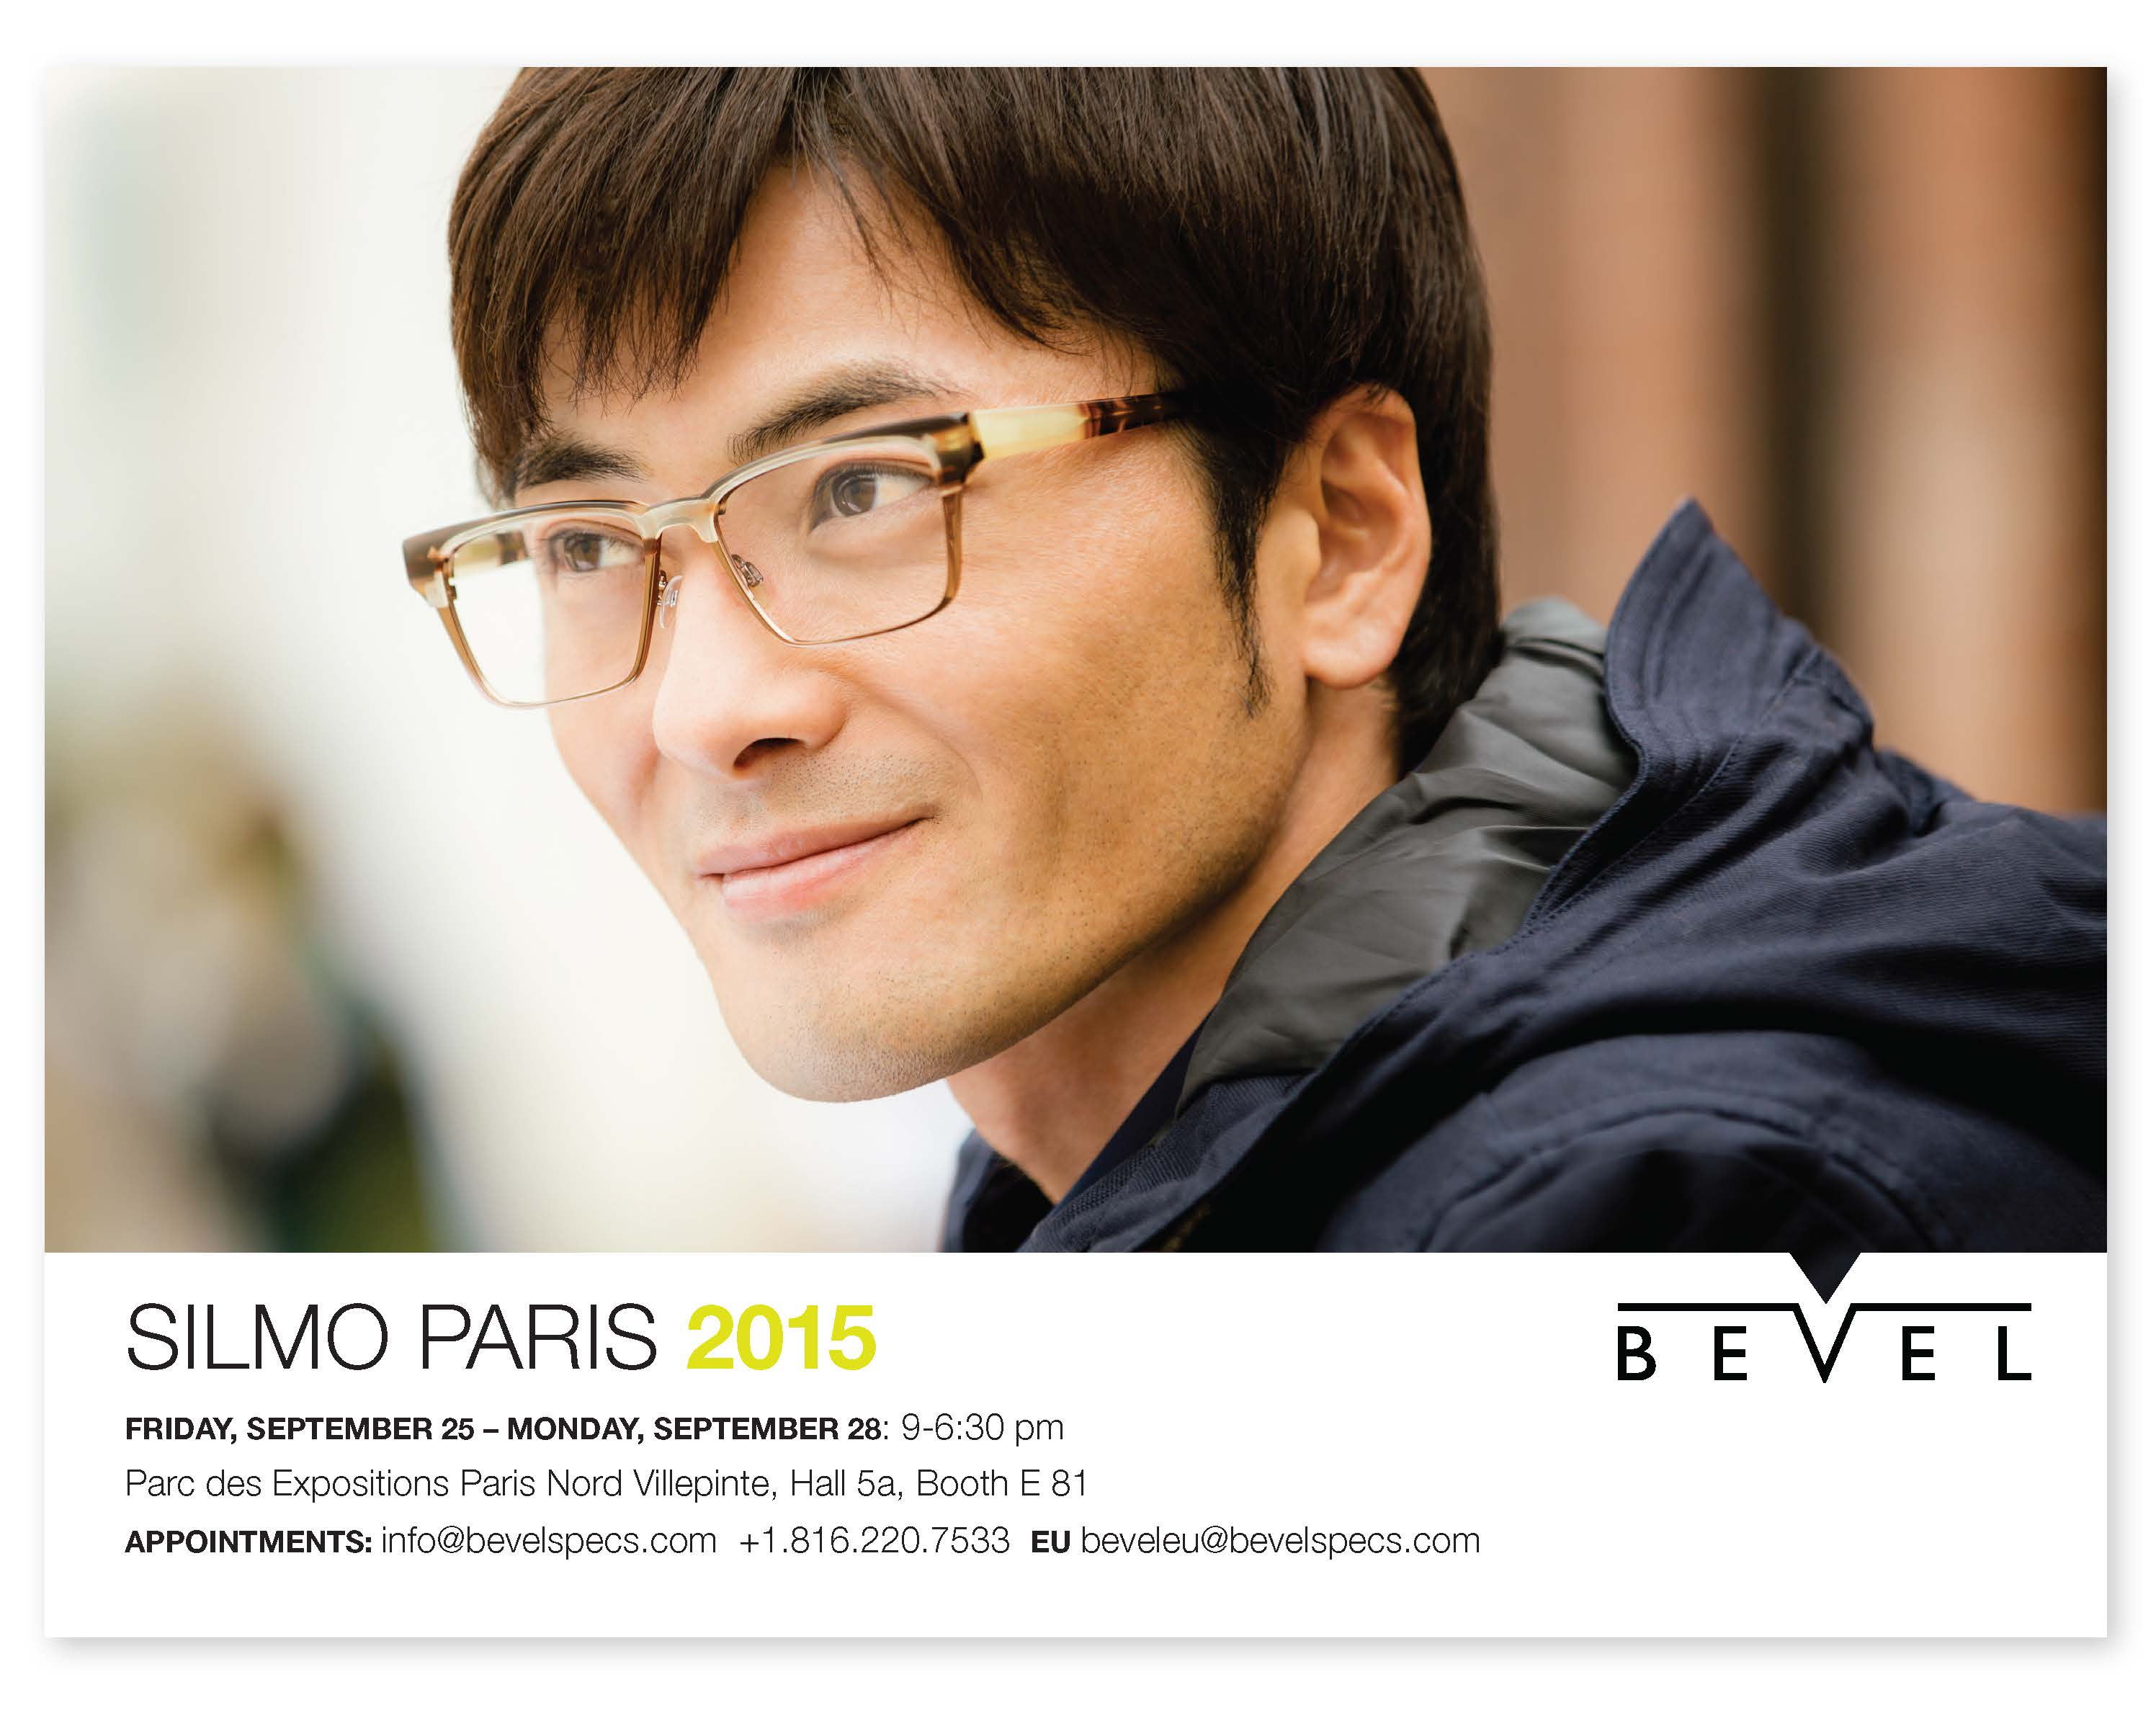 Bevel in Paris